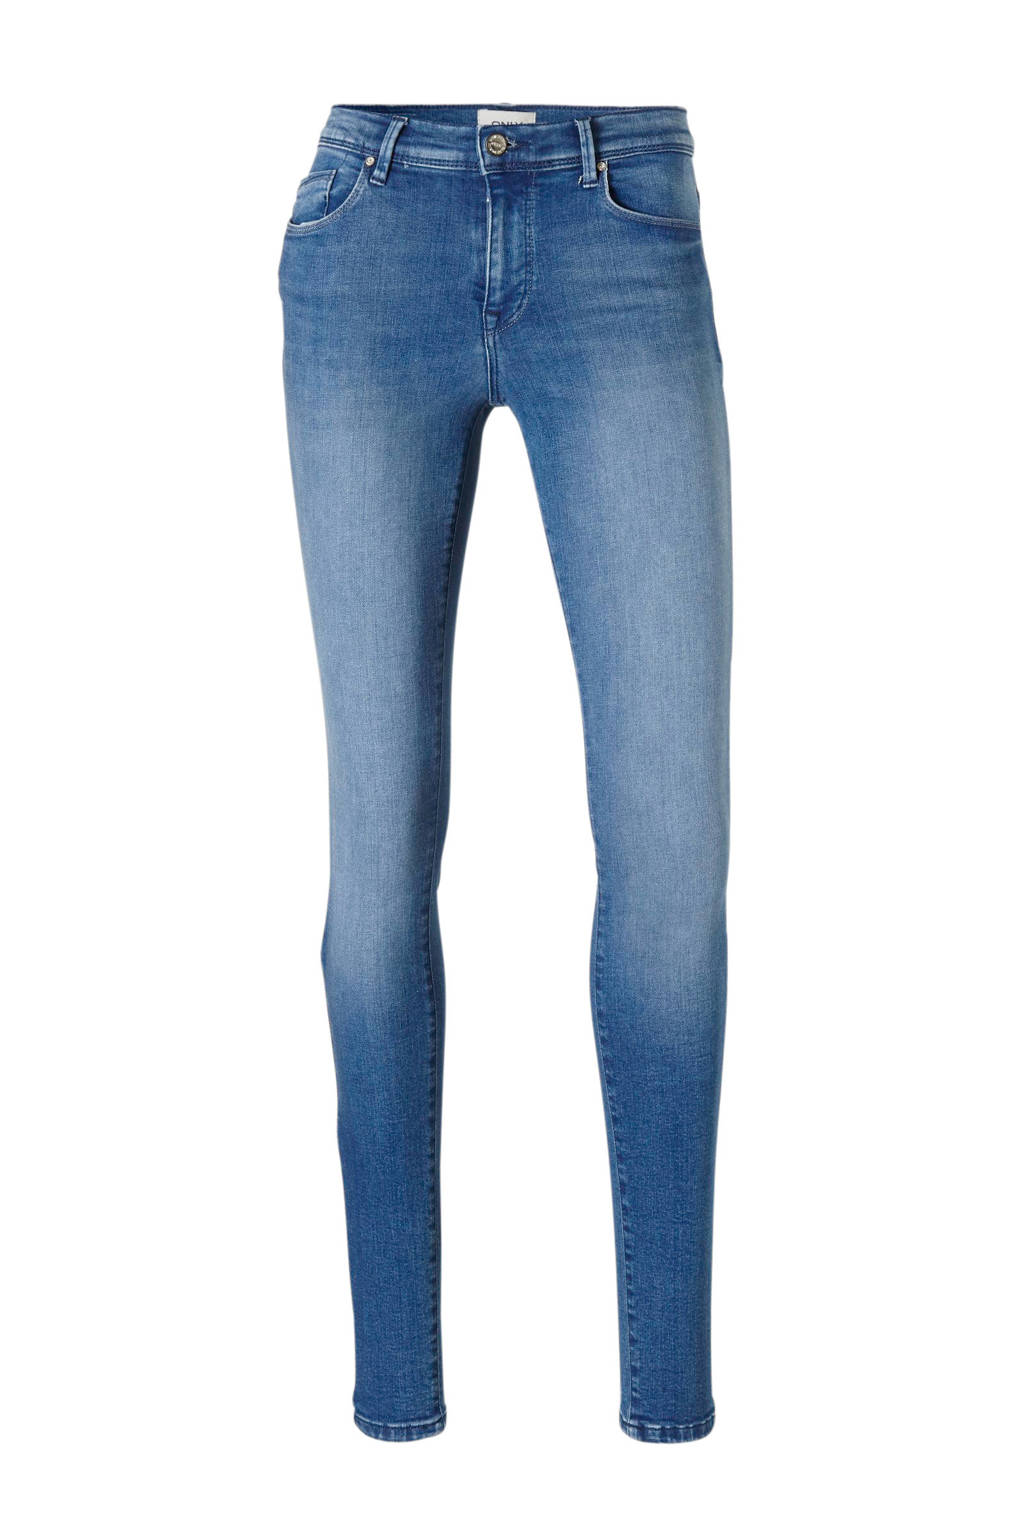 ONLY skinny fit jeans, Blauw